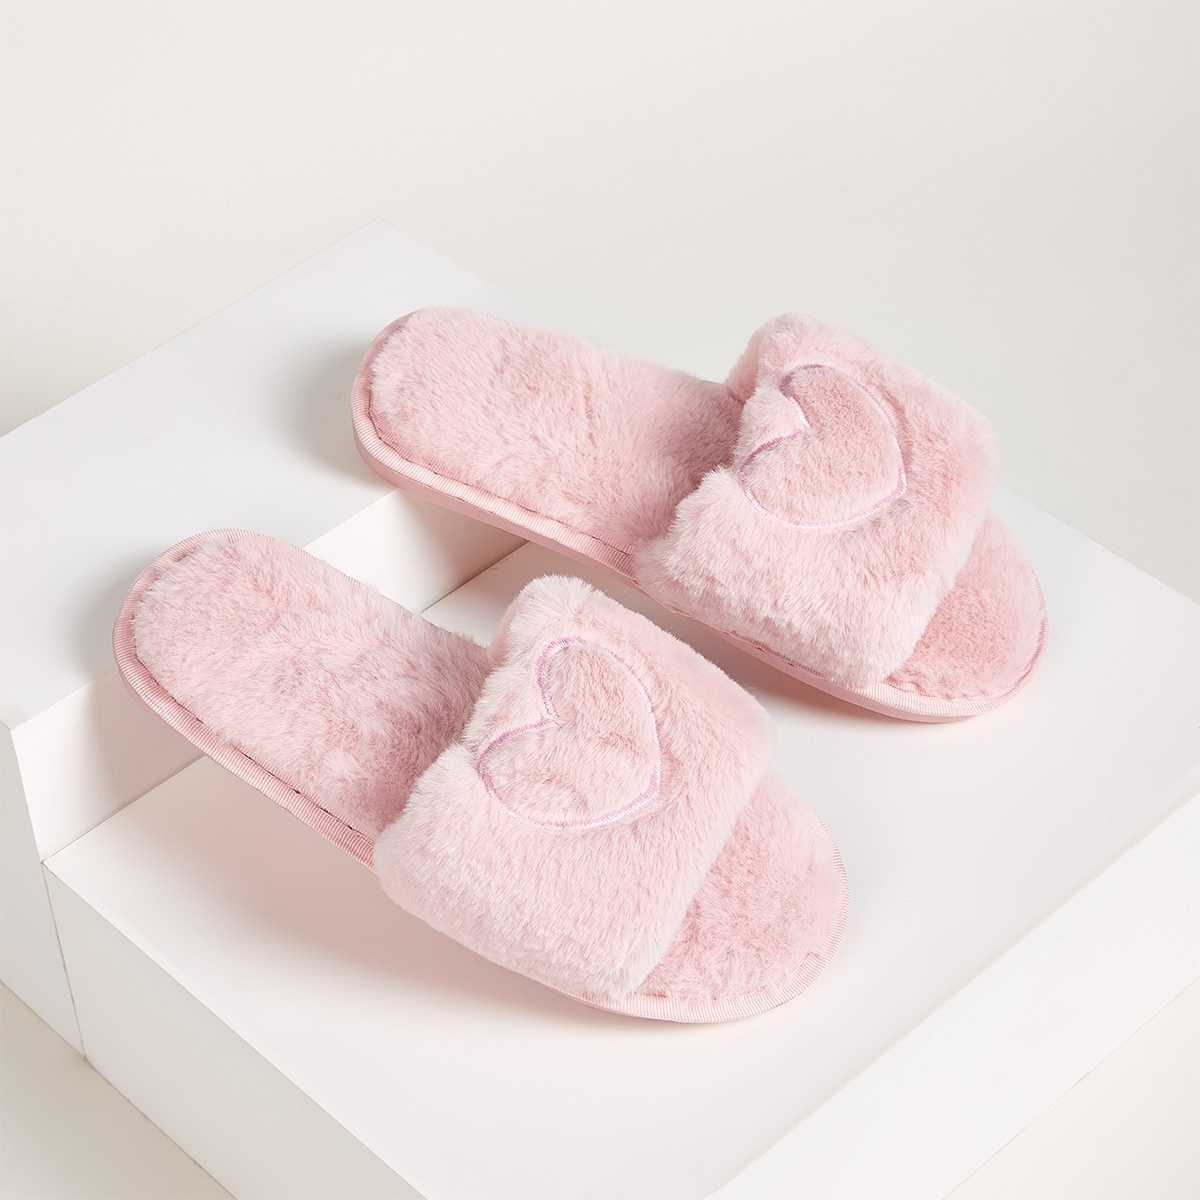 Faux Fur Flat Slippers in Pink by ROMWE on GOOFASH